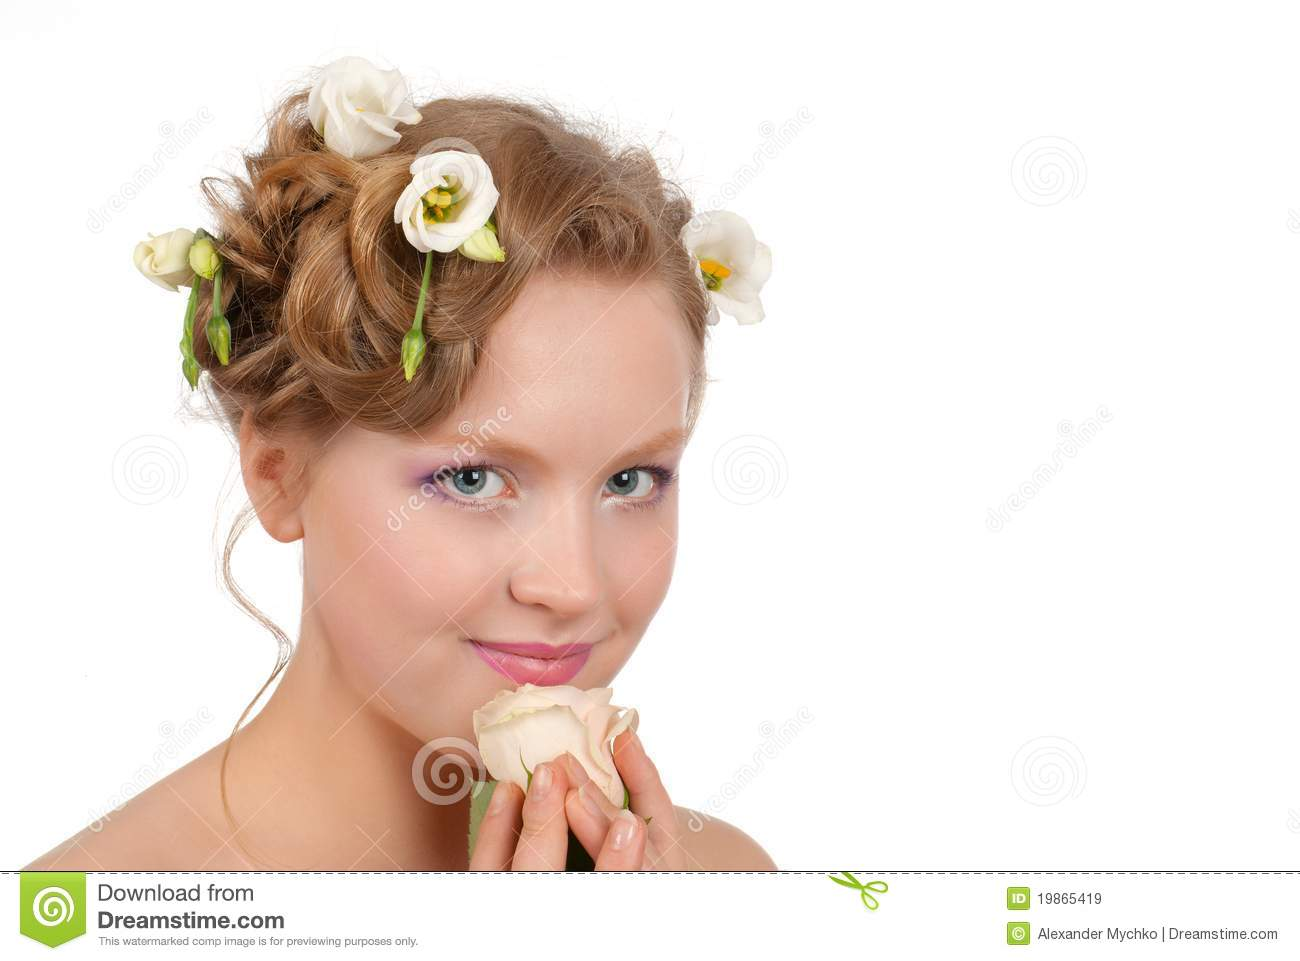 the girl and her flowers Start the birthday girl with a smile and a gift from our collection of birthday gifts for her you'll find beautiful birthday flowers, delicious birthday cakes, and adorable teddy bears among our selection of gifts for her.